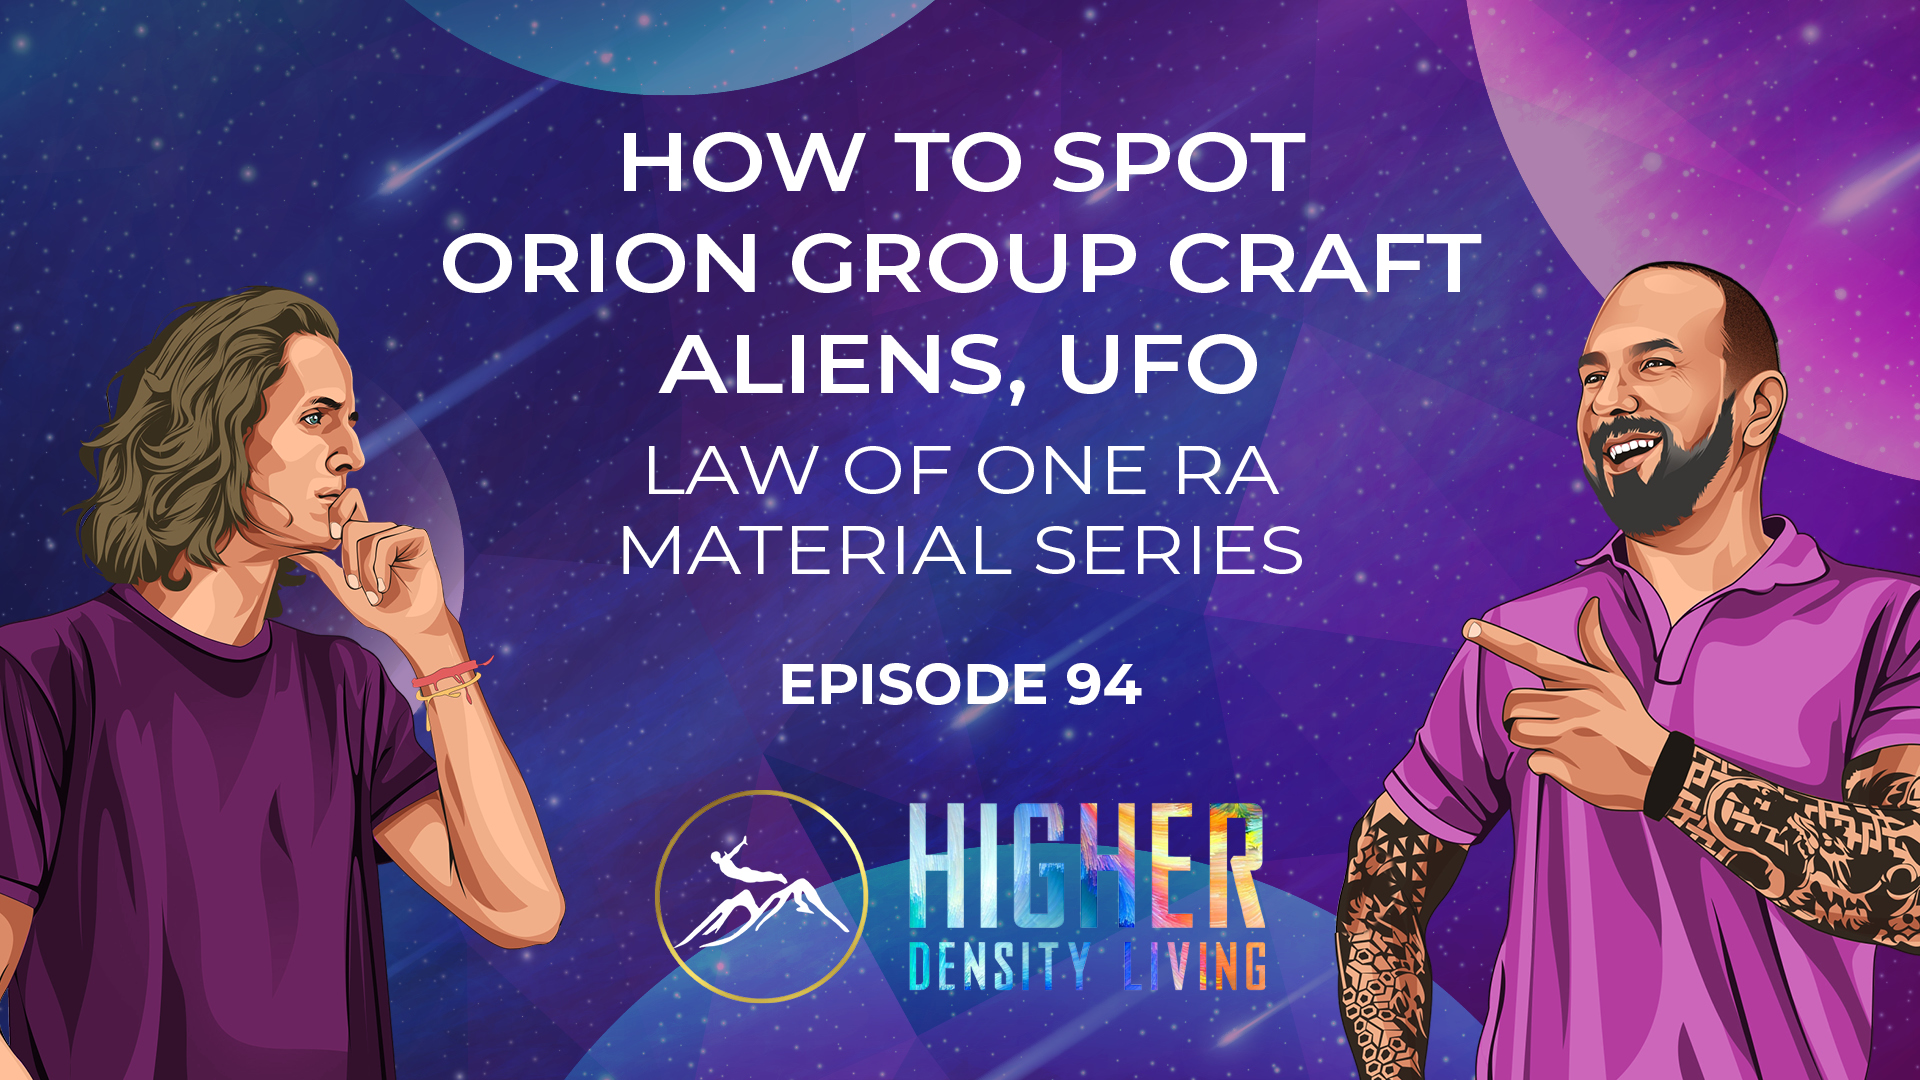 How to Spot Orion Group Craft Aliens